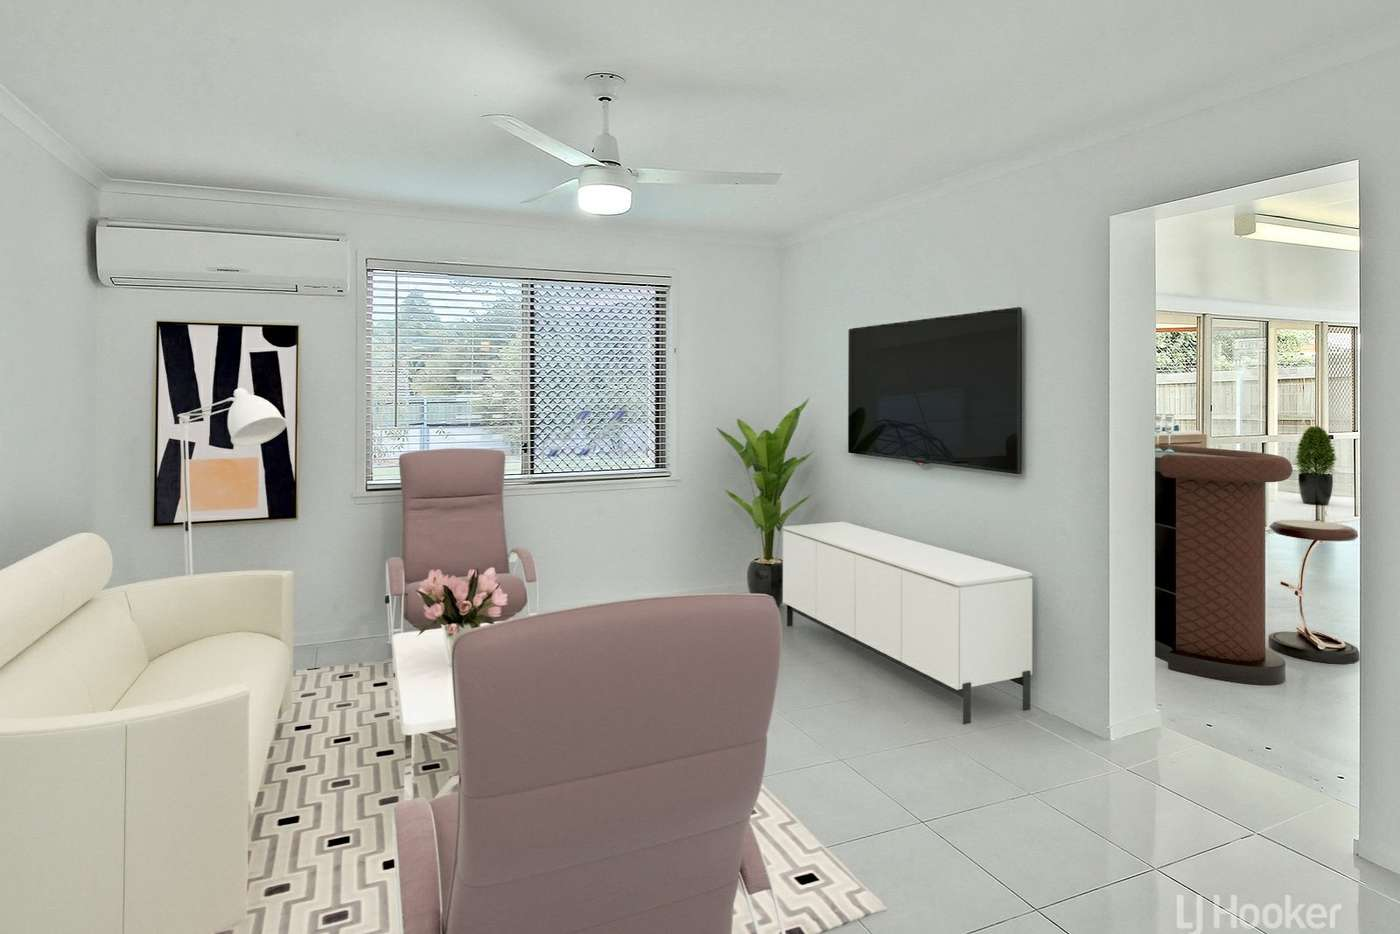 Fifth view of Homely house listing, 285 Algester Road, Algester QLD 4115